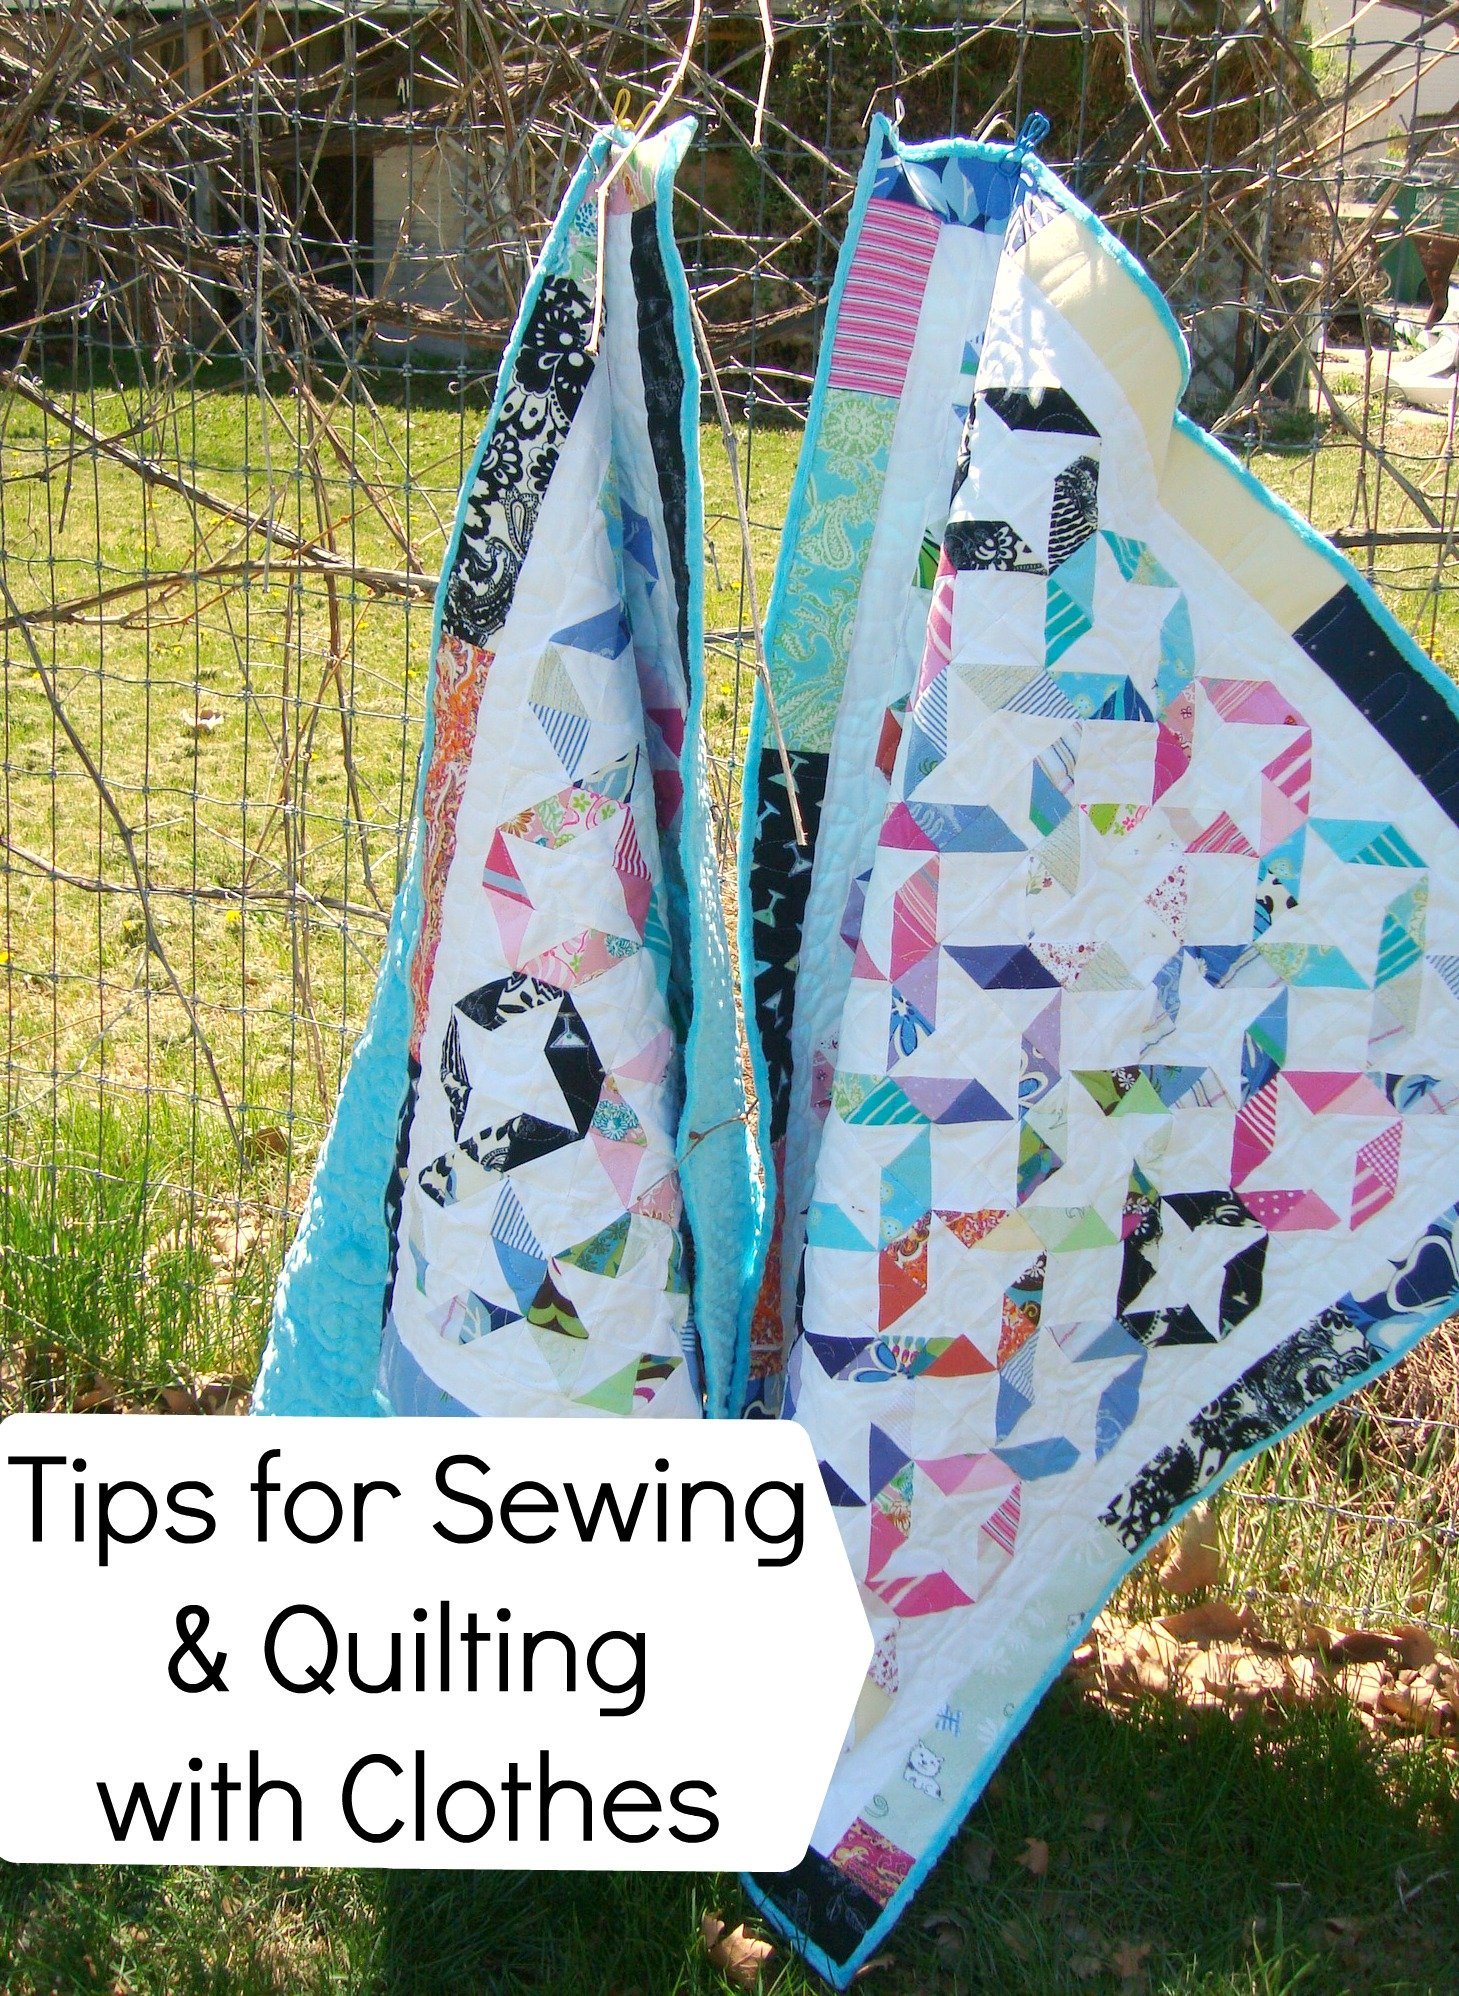 T shirt quilt design instructions - Quilting A T Shirt Quilt Instructions And Hints